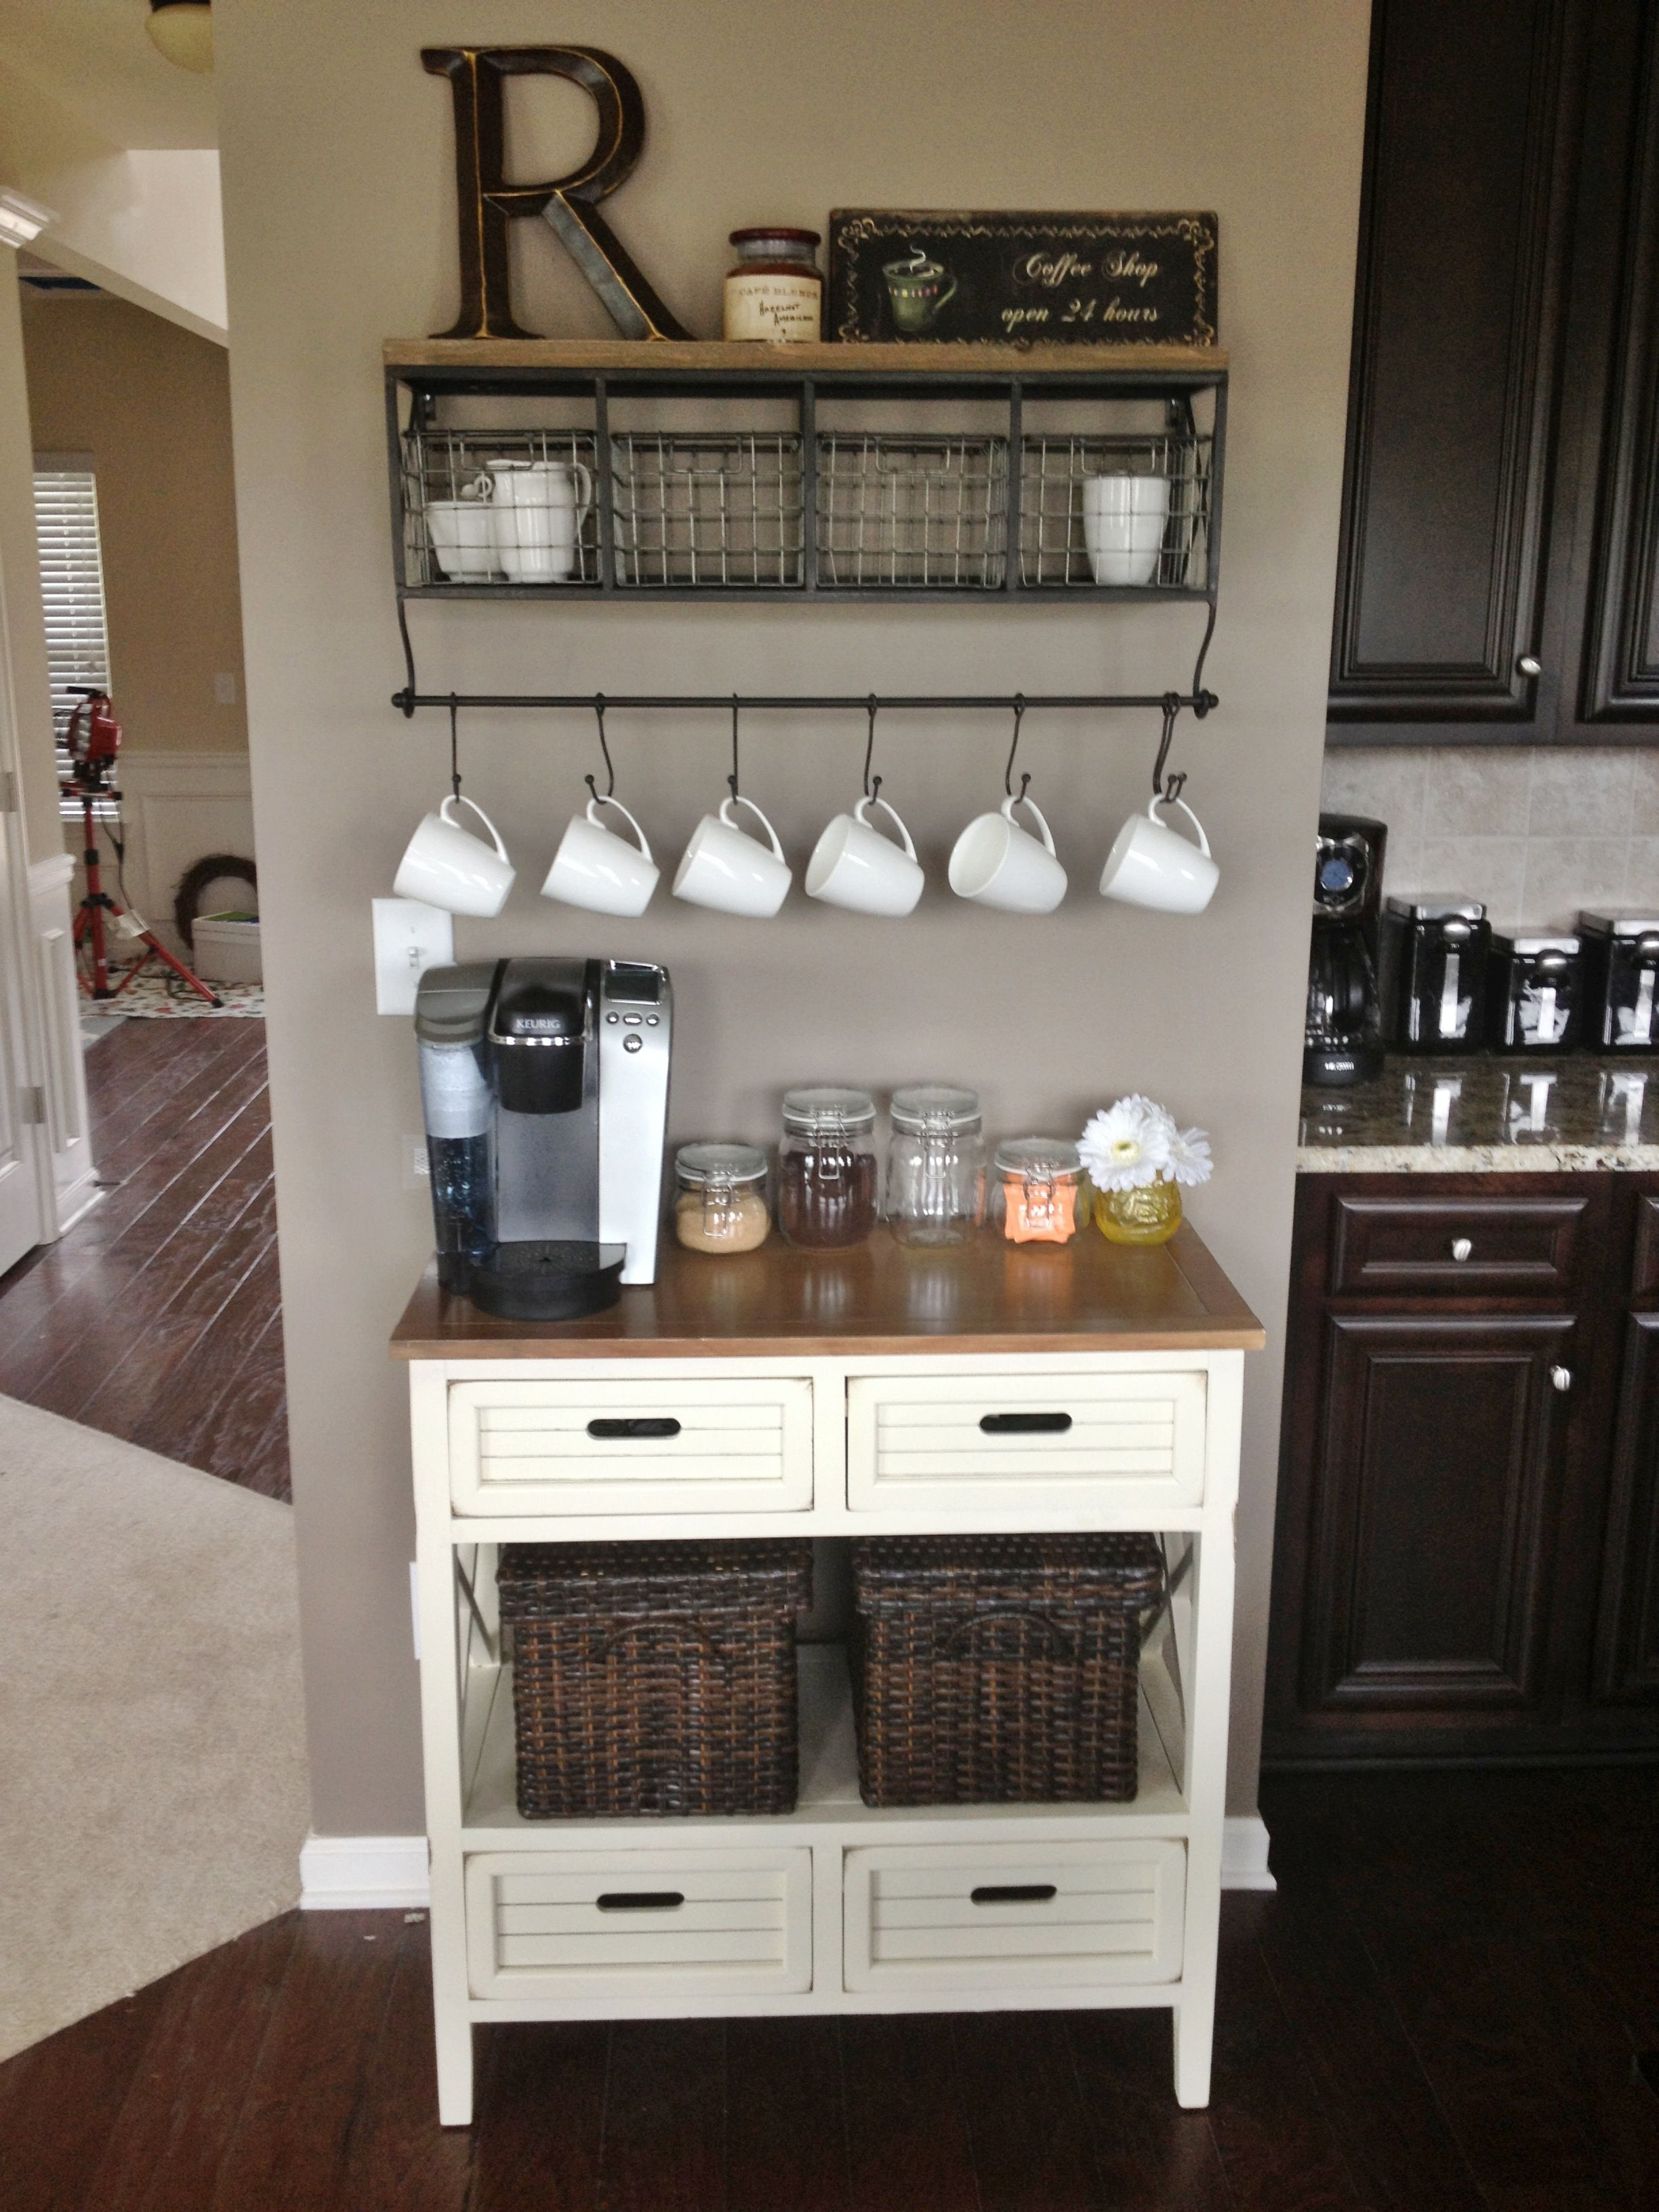 23 Adorable Coffee Station Ideas (and How to Make Your Own) | Coffee ...